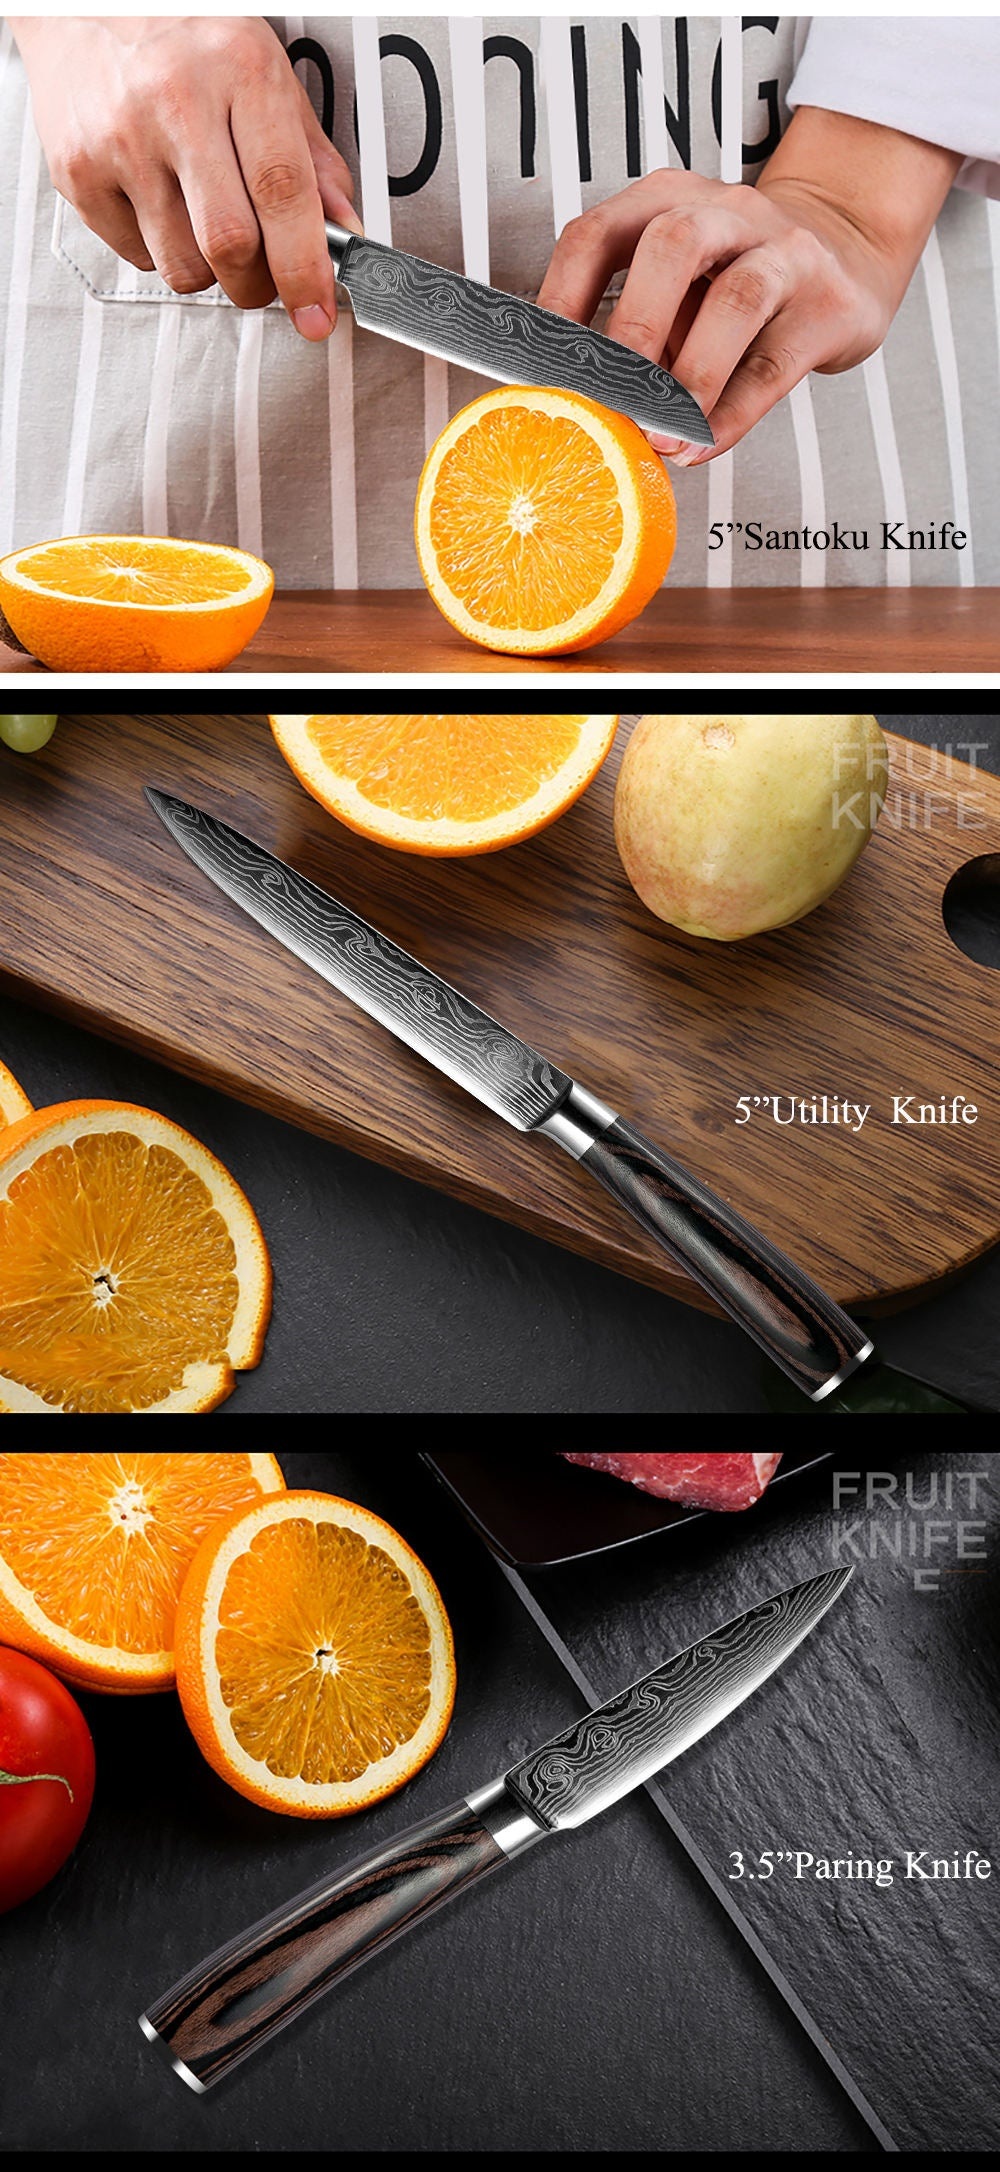 Japanese Stainless Steel Knife Set